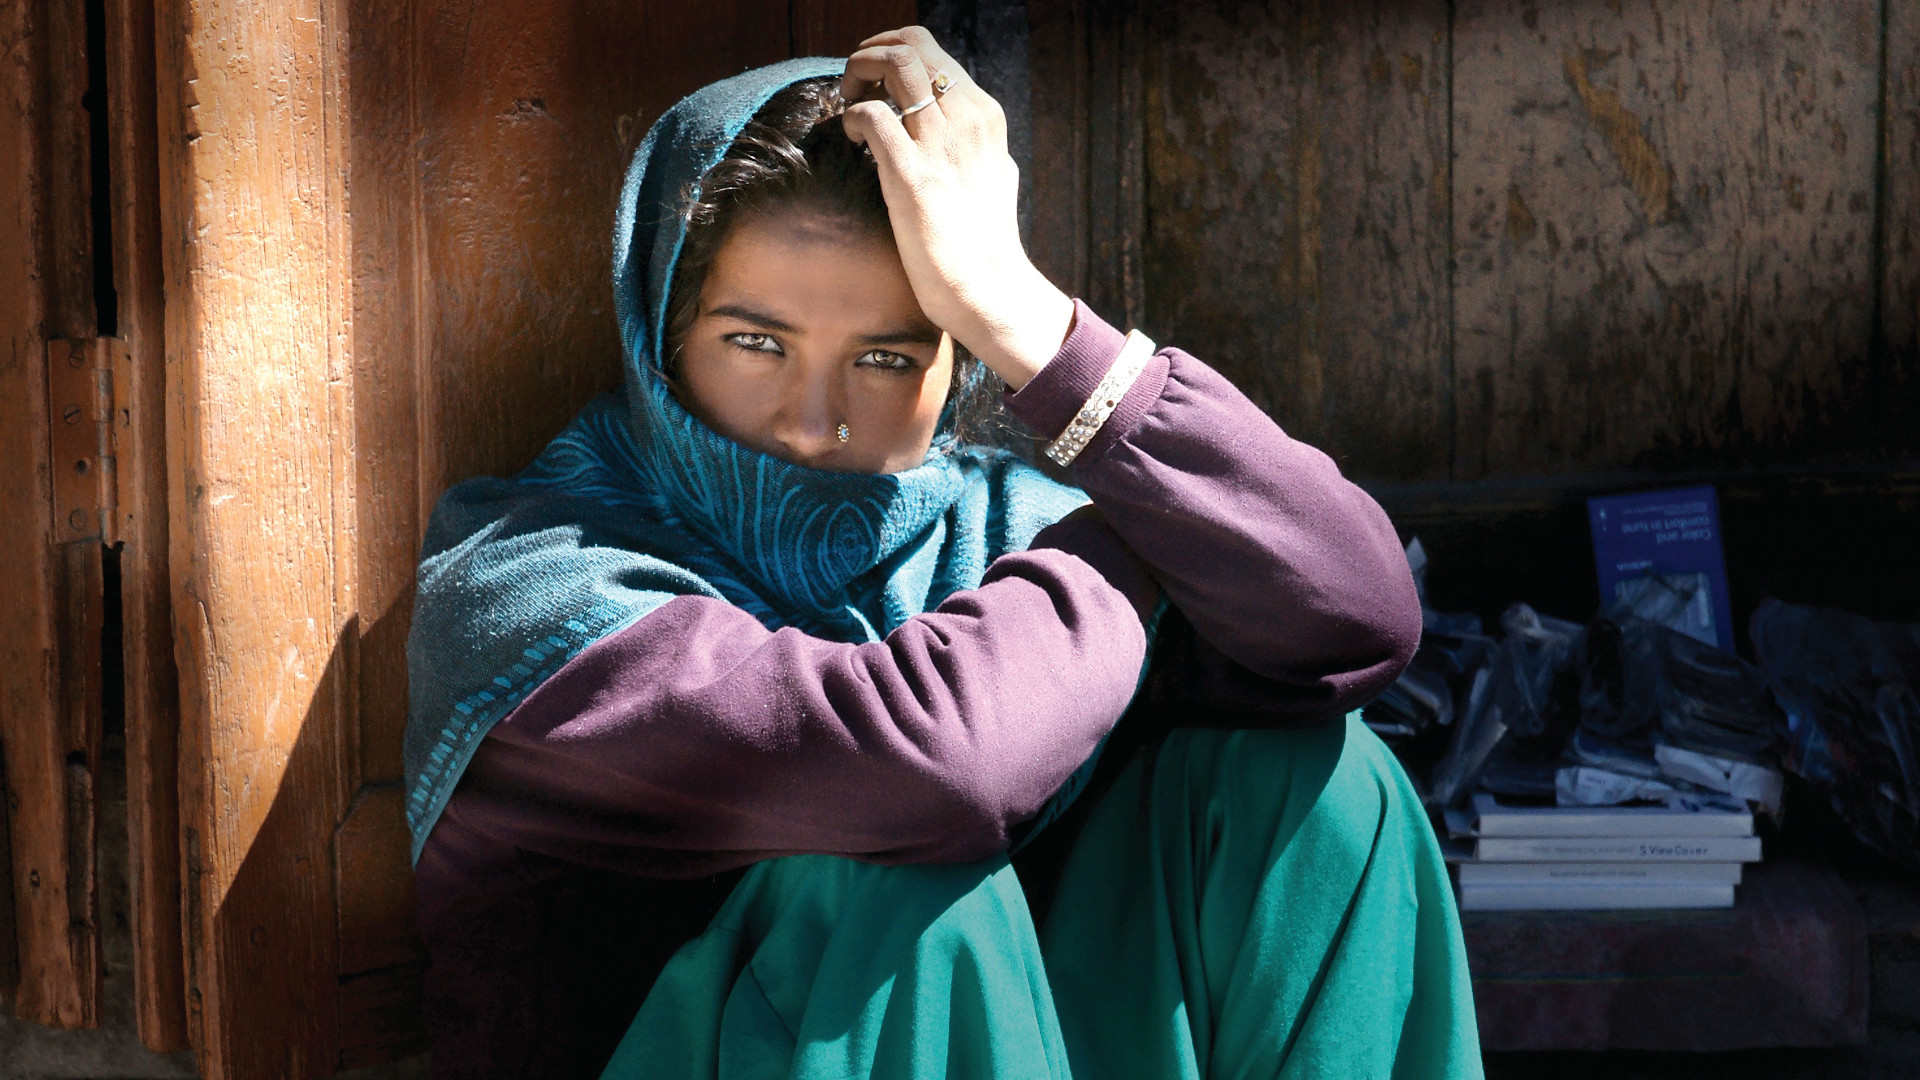 Middle eastern lady sitting with her face covered by a scarf